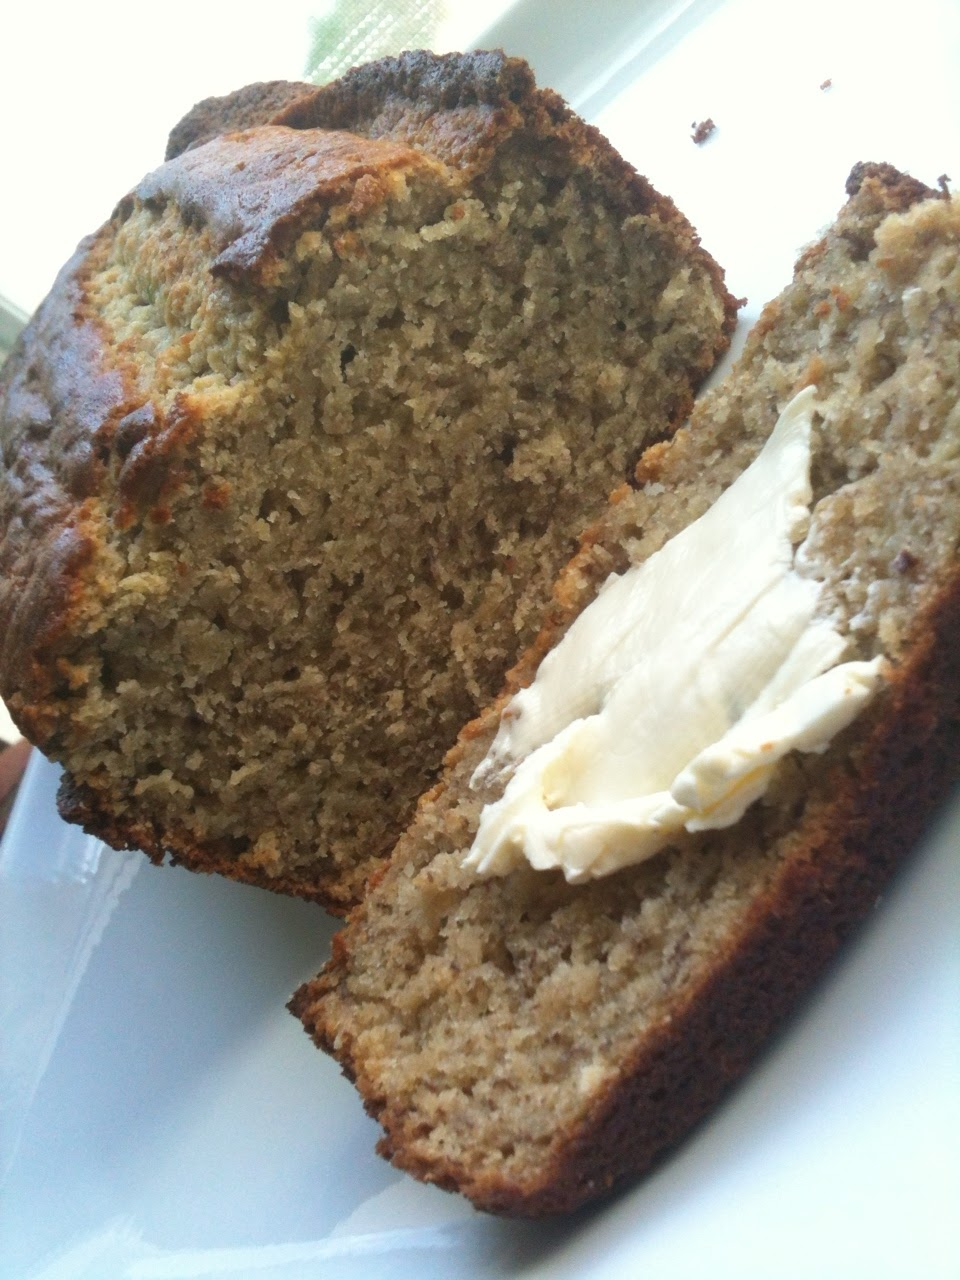 Coupons Make it Free Blog: Gluten Free Banana Bread Recipe